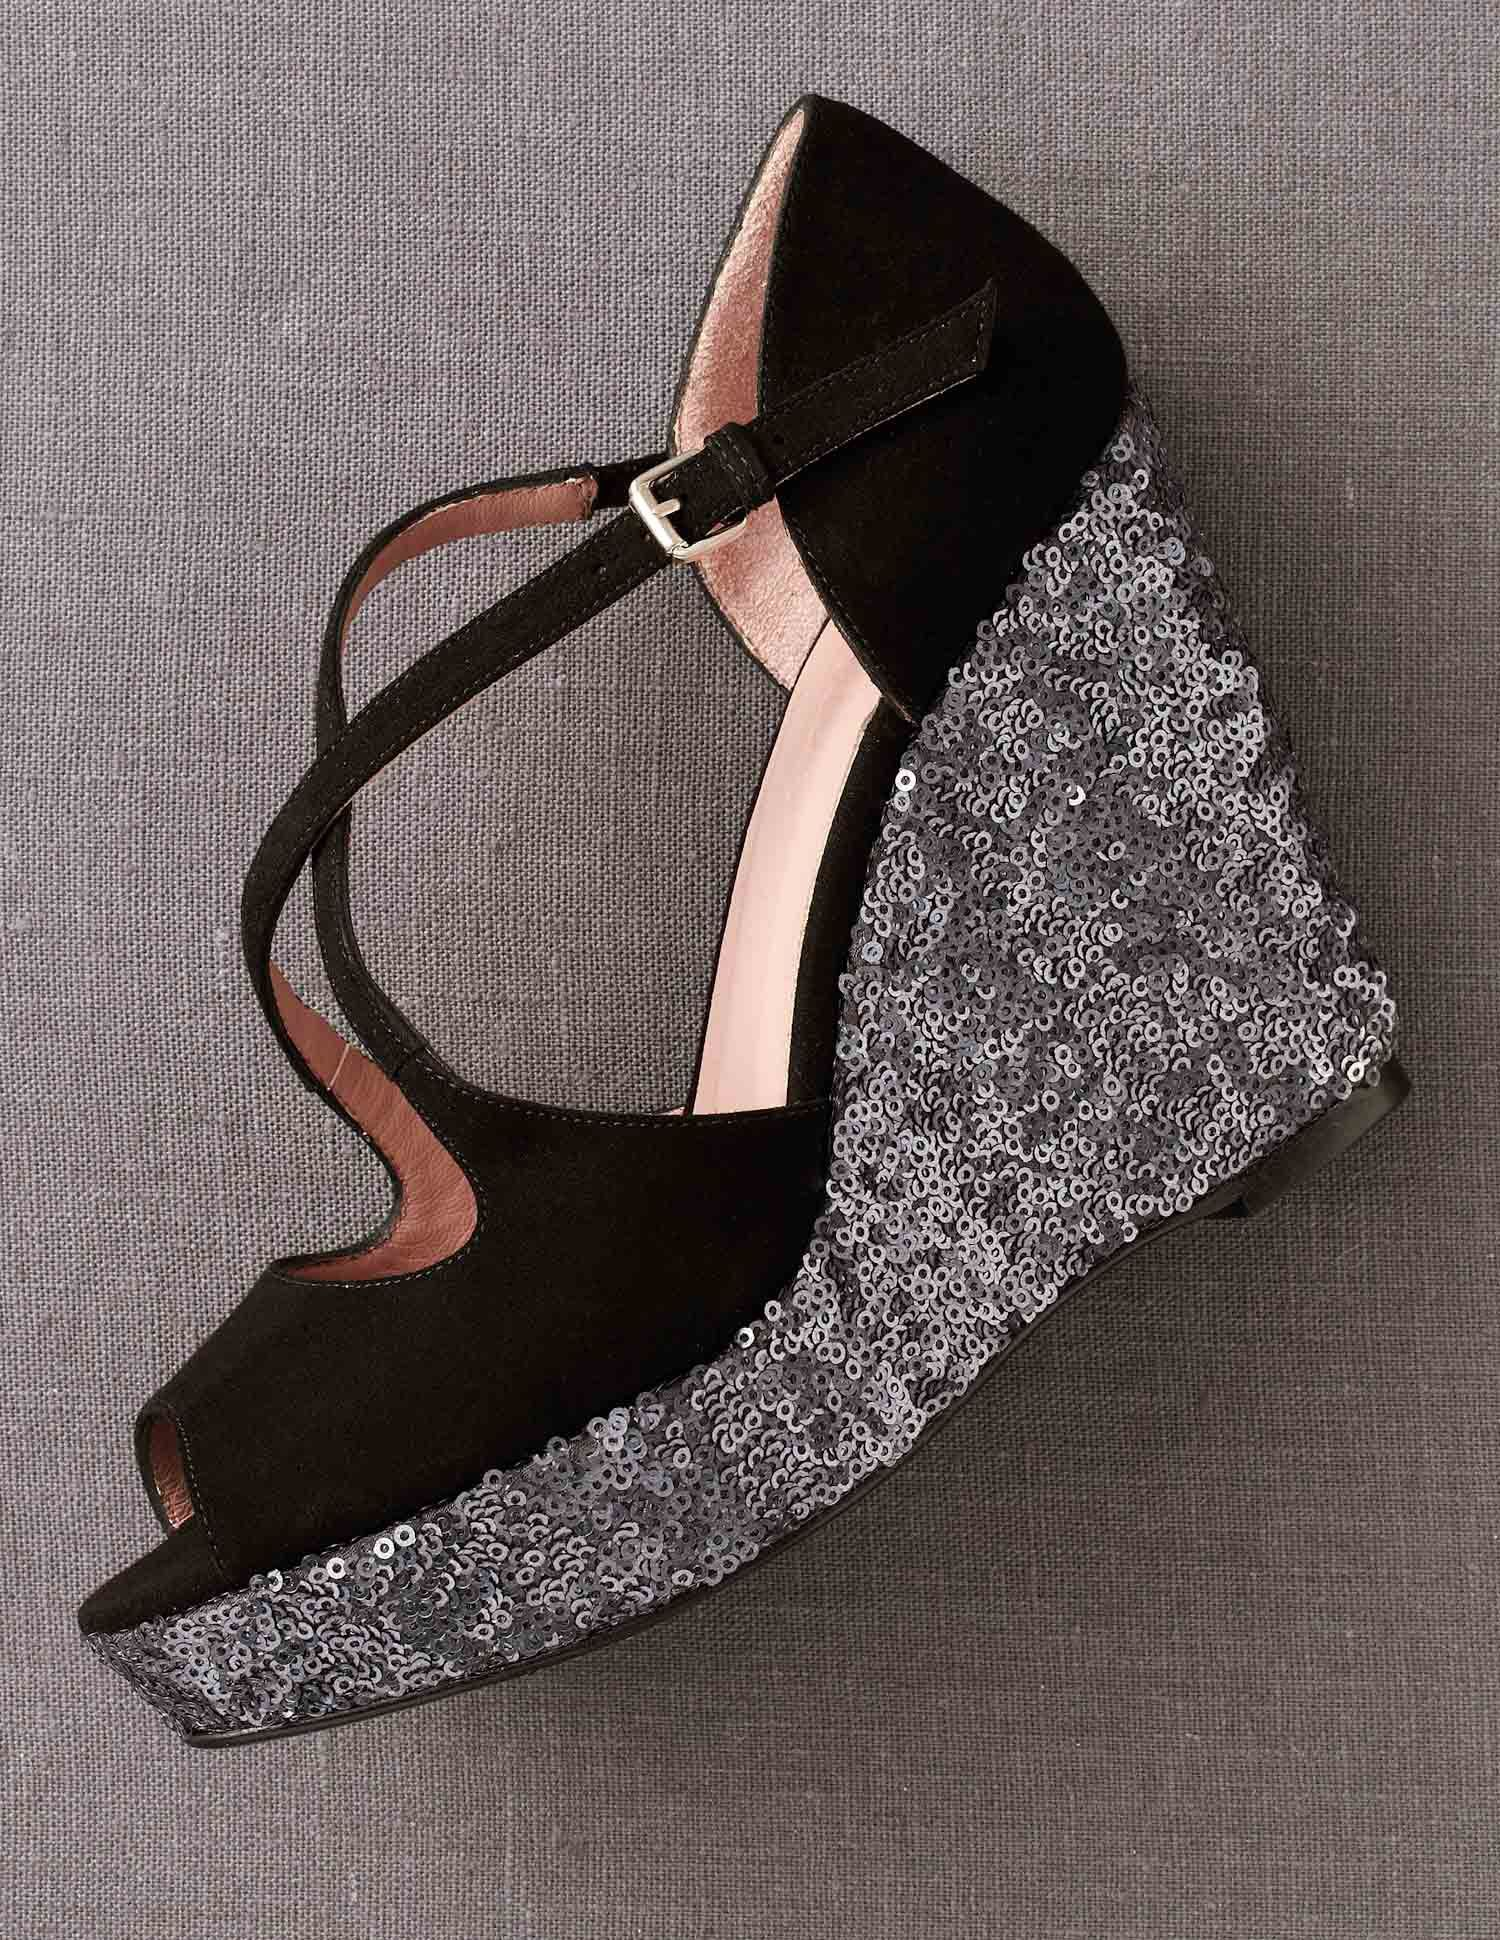 Crossover Wedges from Boden in black suede with gunmetal sequins!  LoVe!